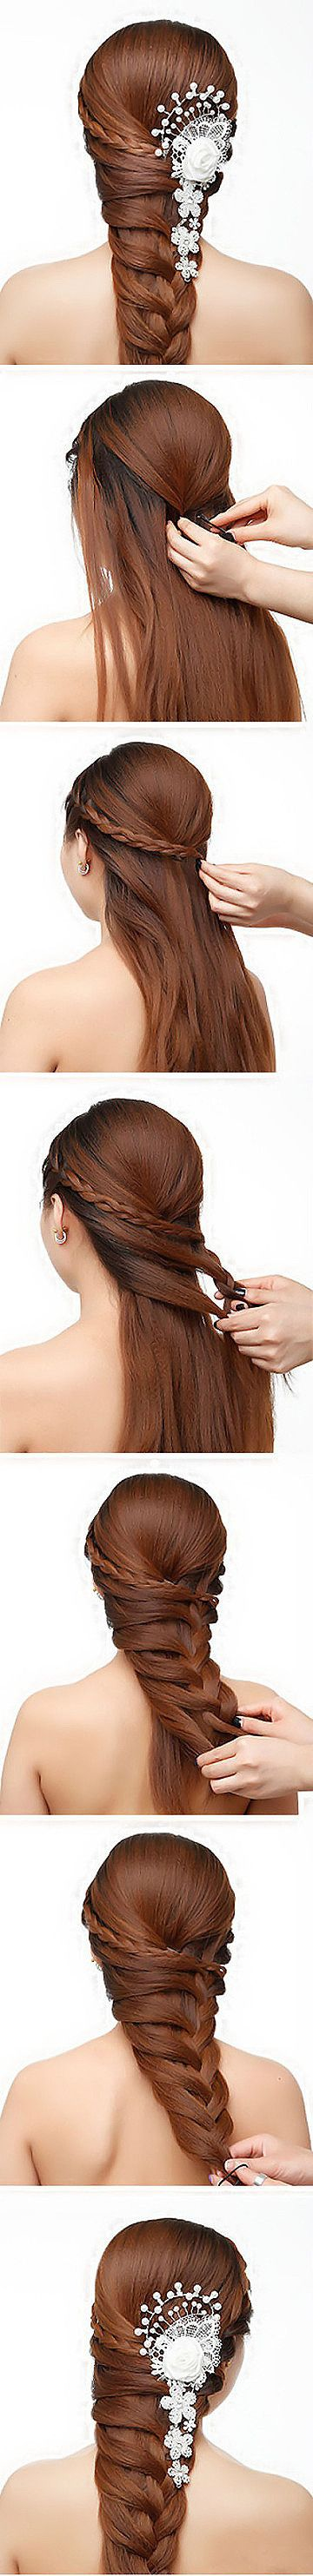 Lovely Braid for special day